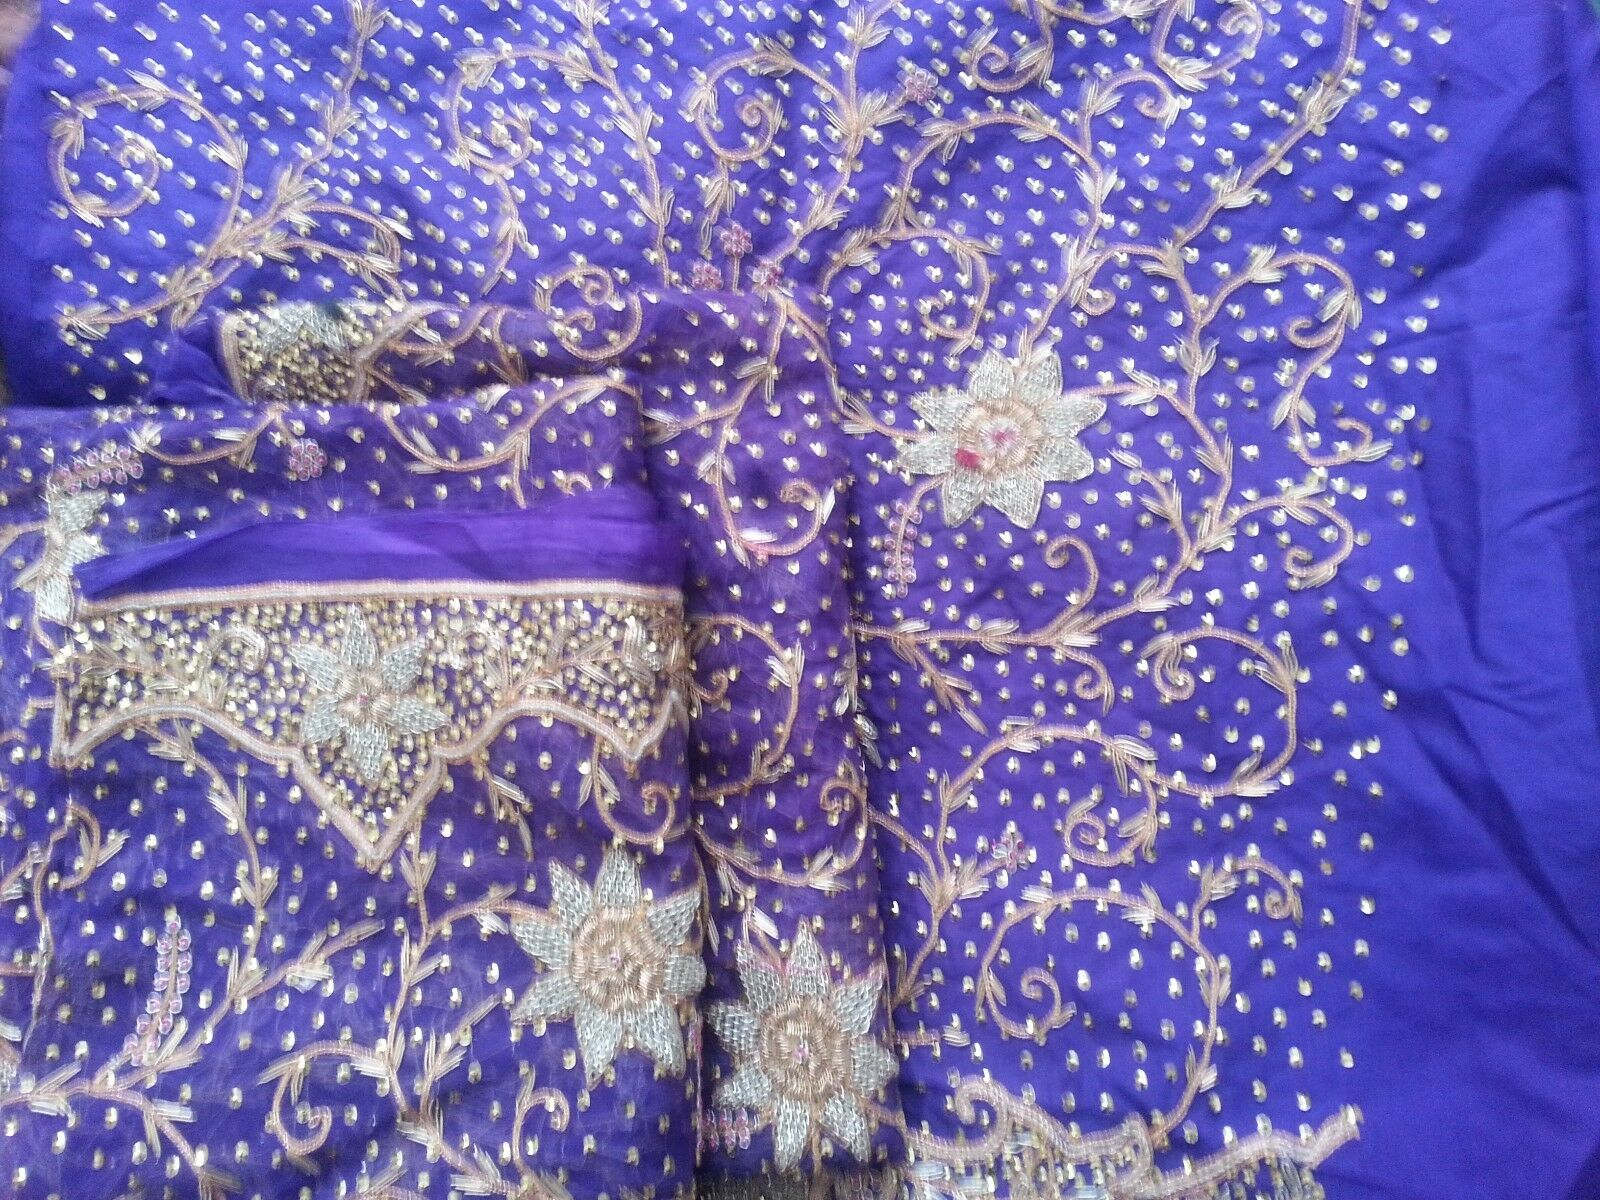 JOB ALL NEW LOT 2 Sari 1 Shawl 4 Ladies Suits all unsewn items some with bangles